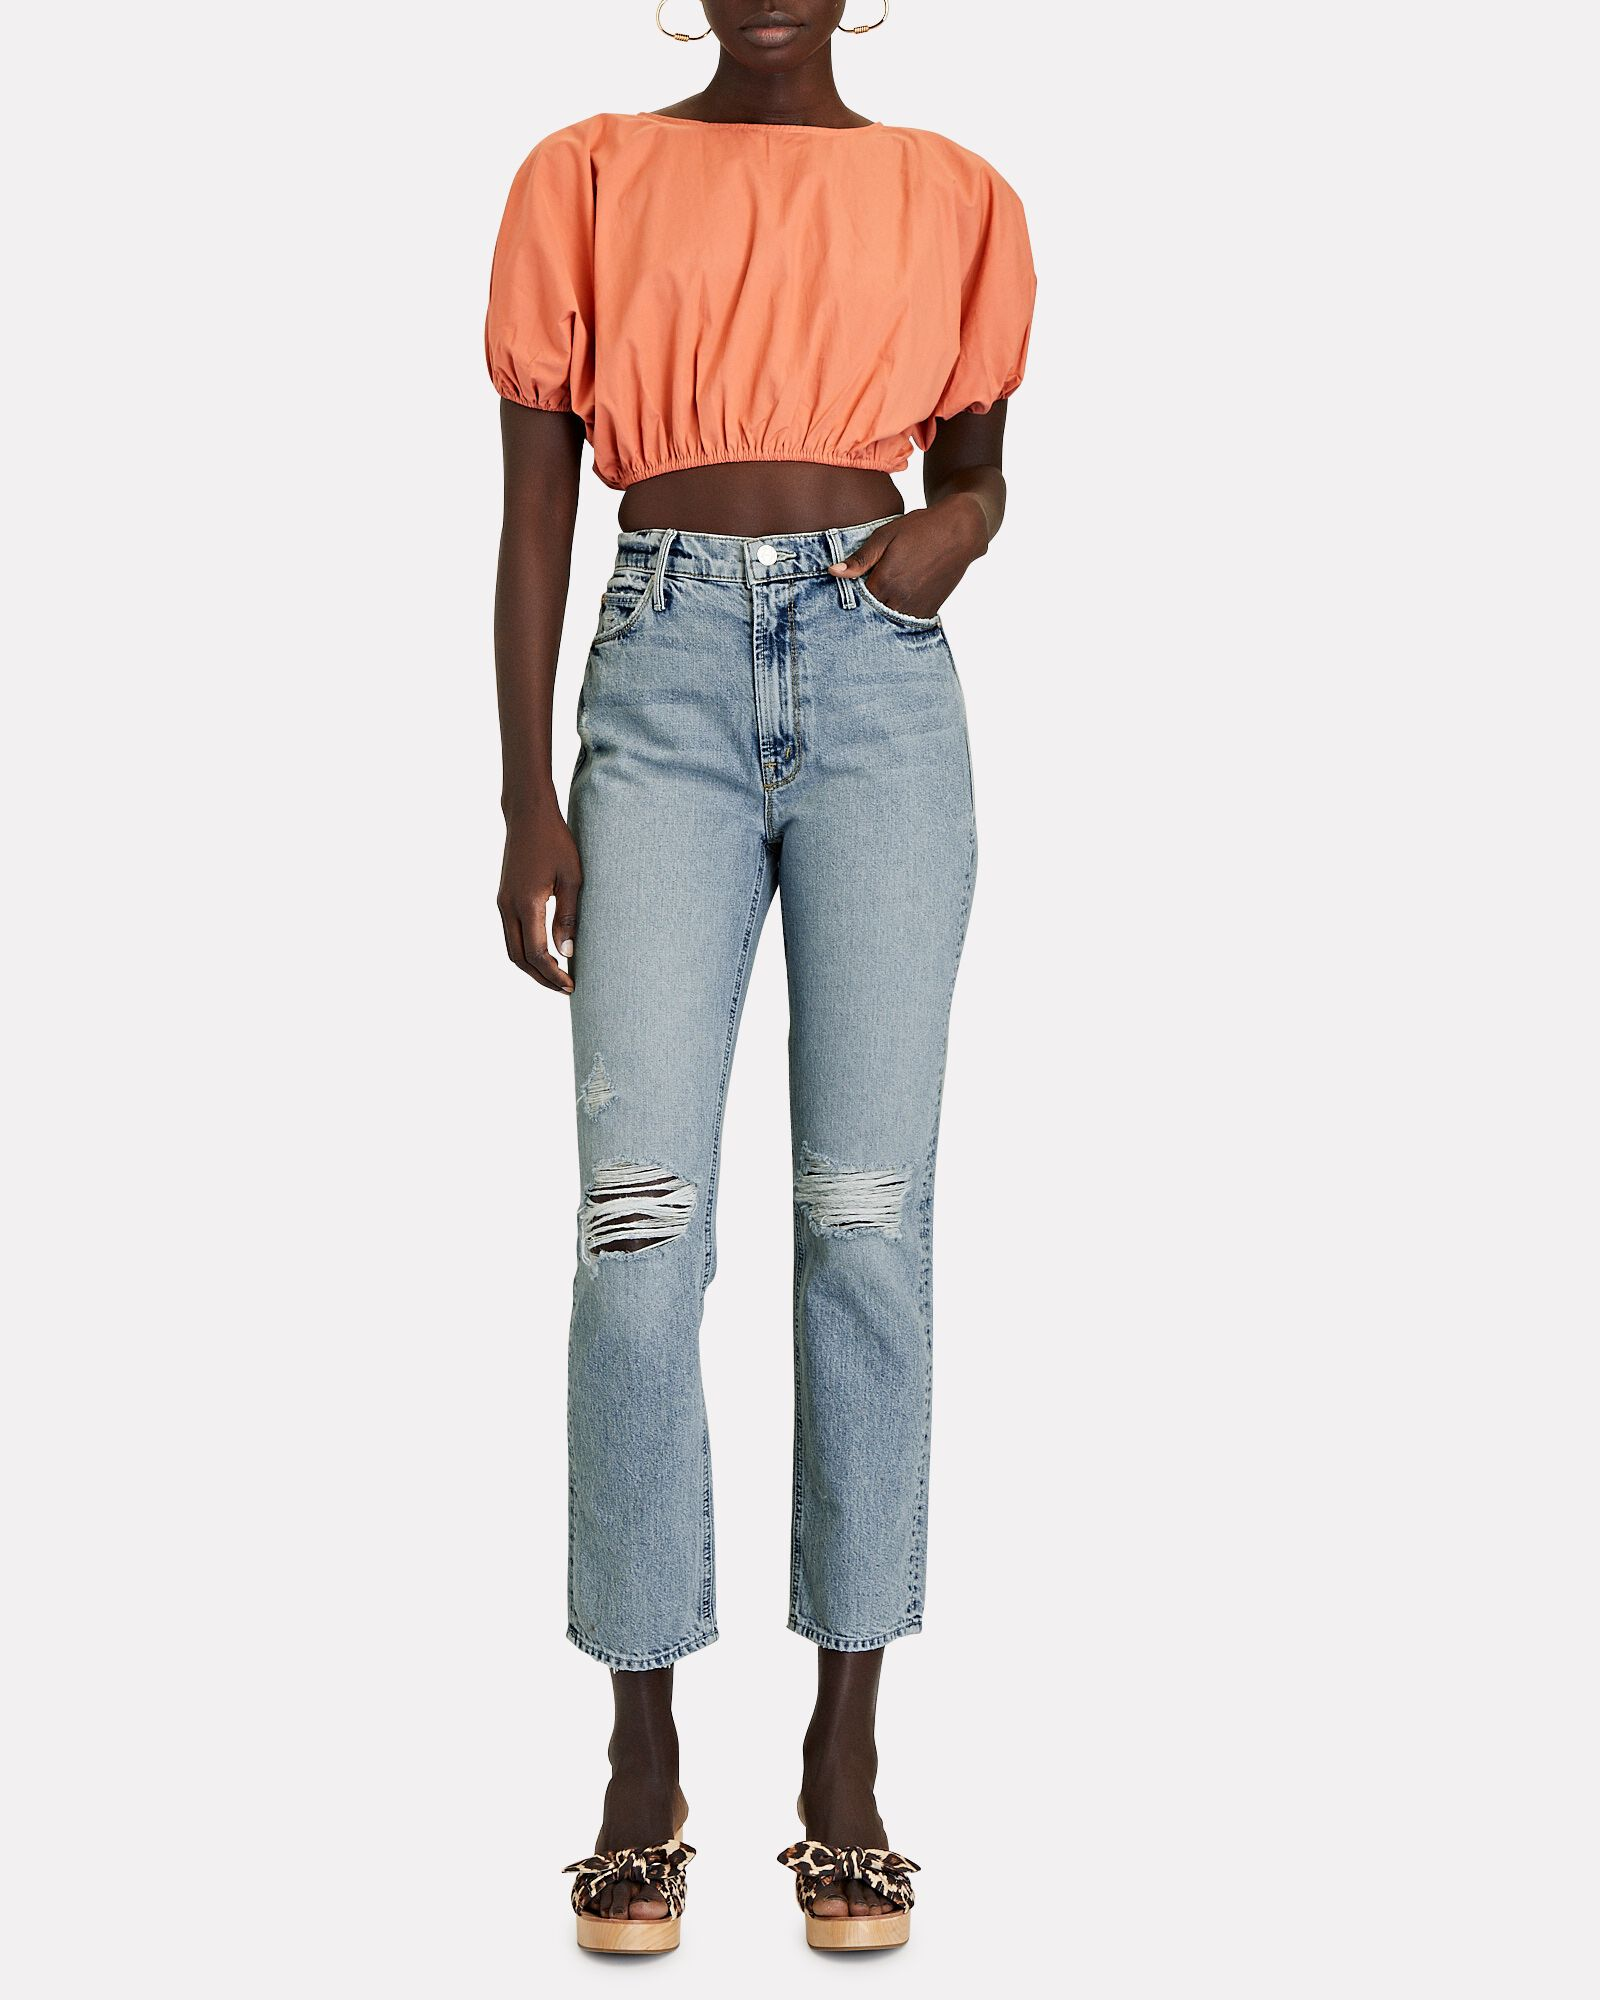 The Dazzler Distressed Ankle Jeans, LOST IT, hi-res